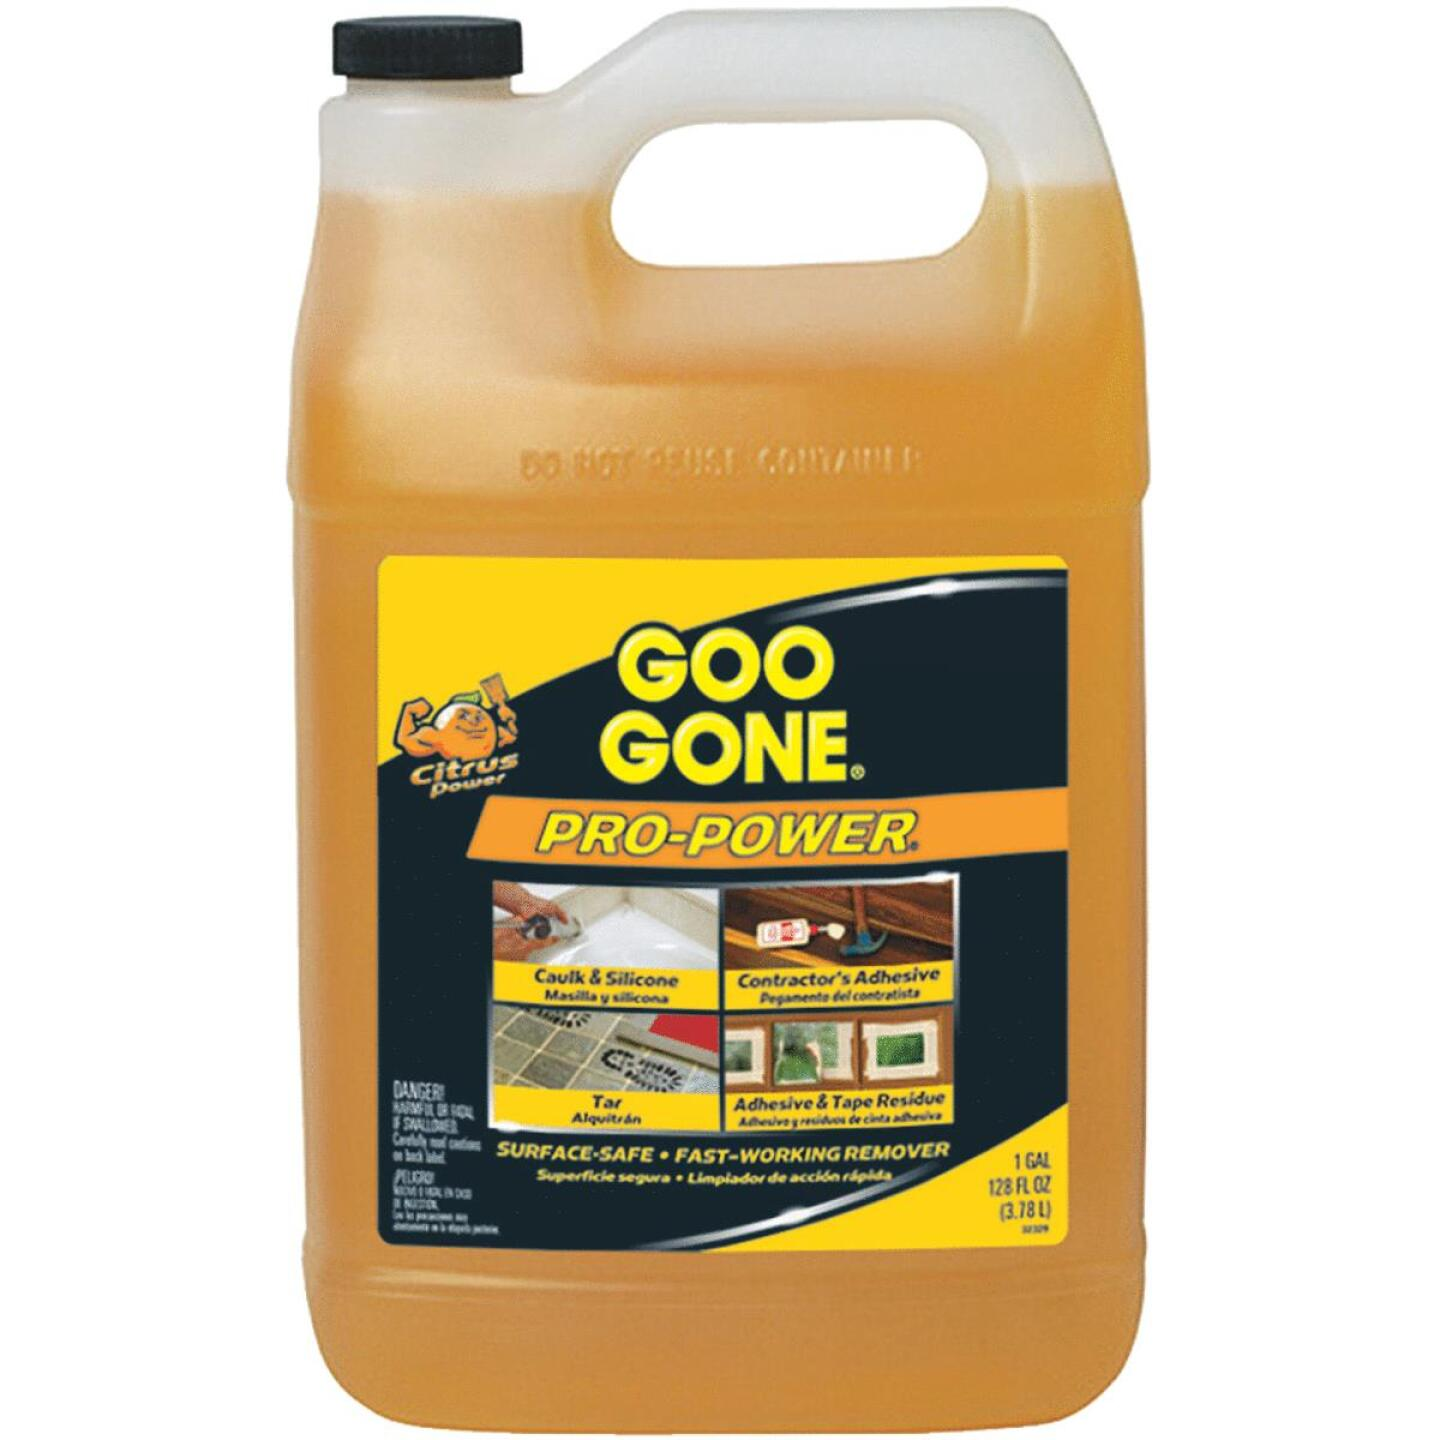 Goo Gone 1 Gal. Pro-Power Adhesive Remover Image 252